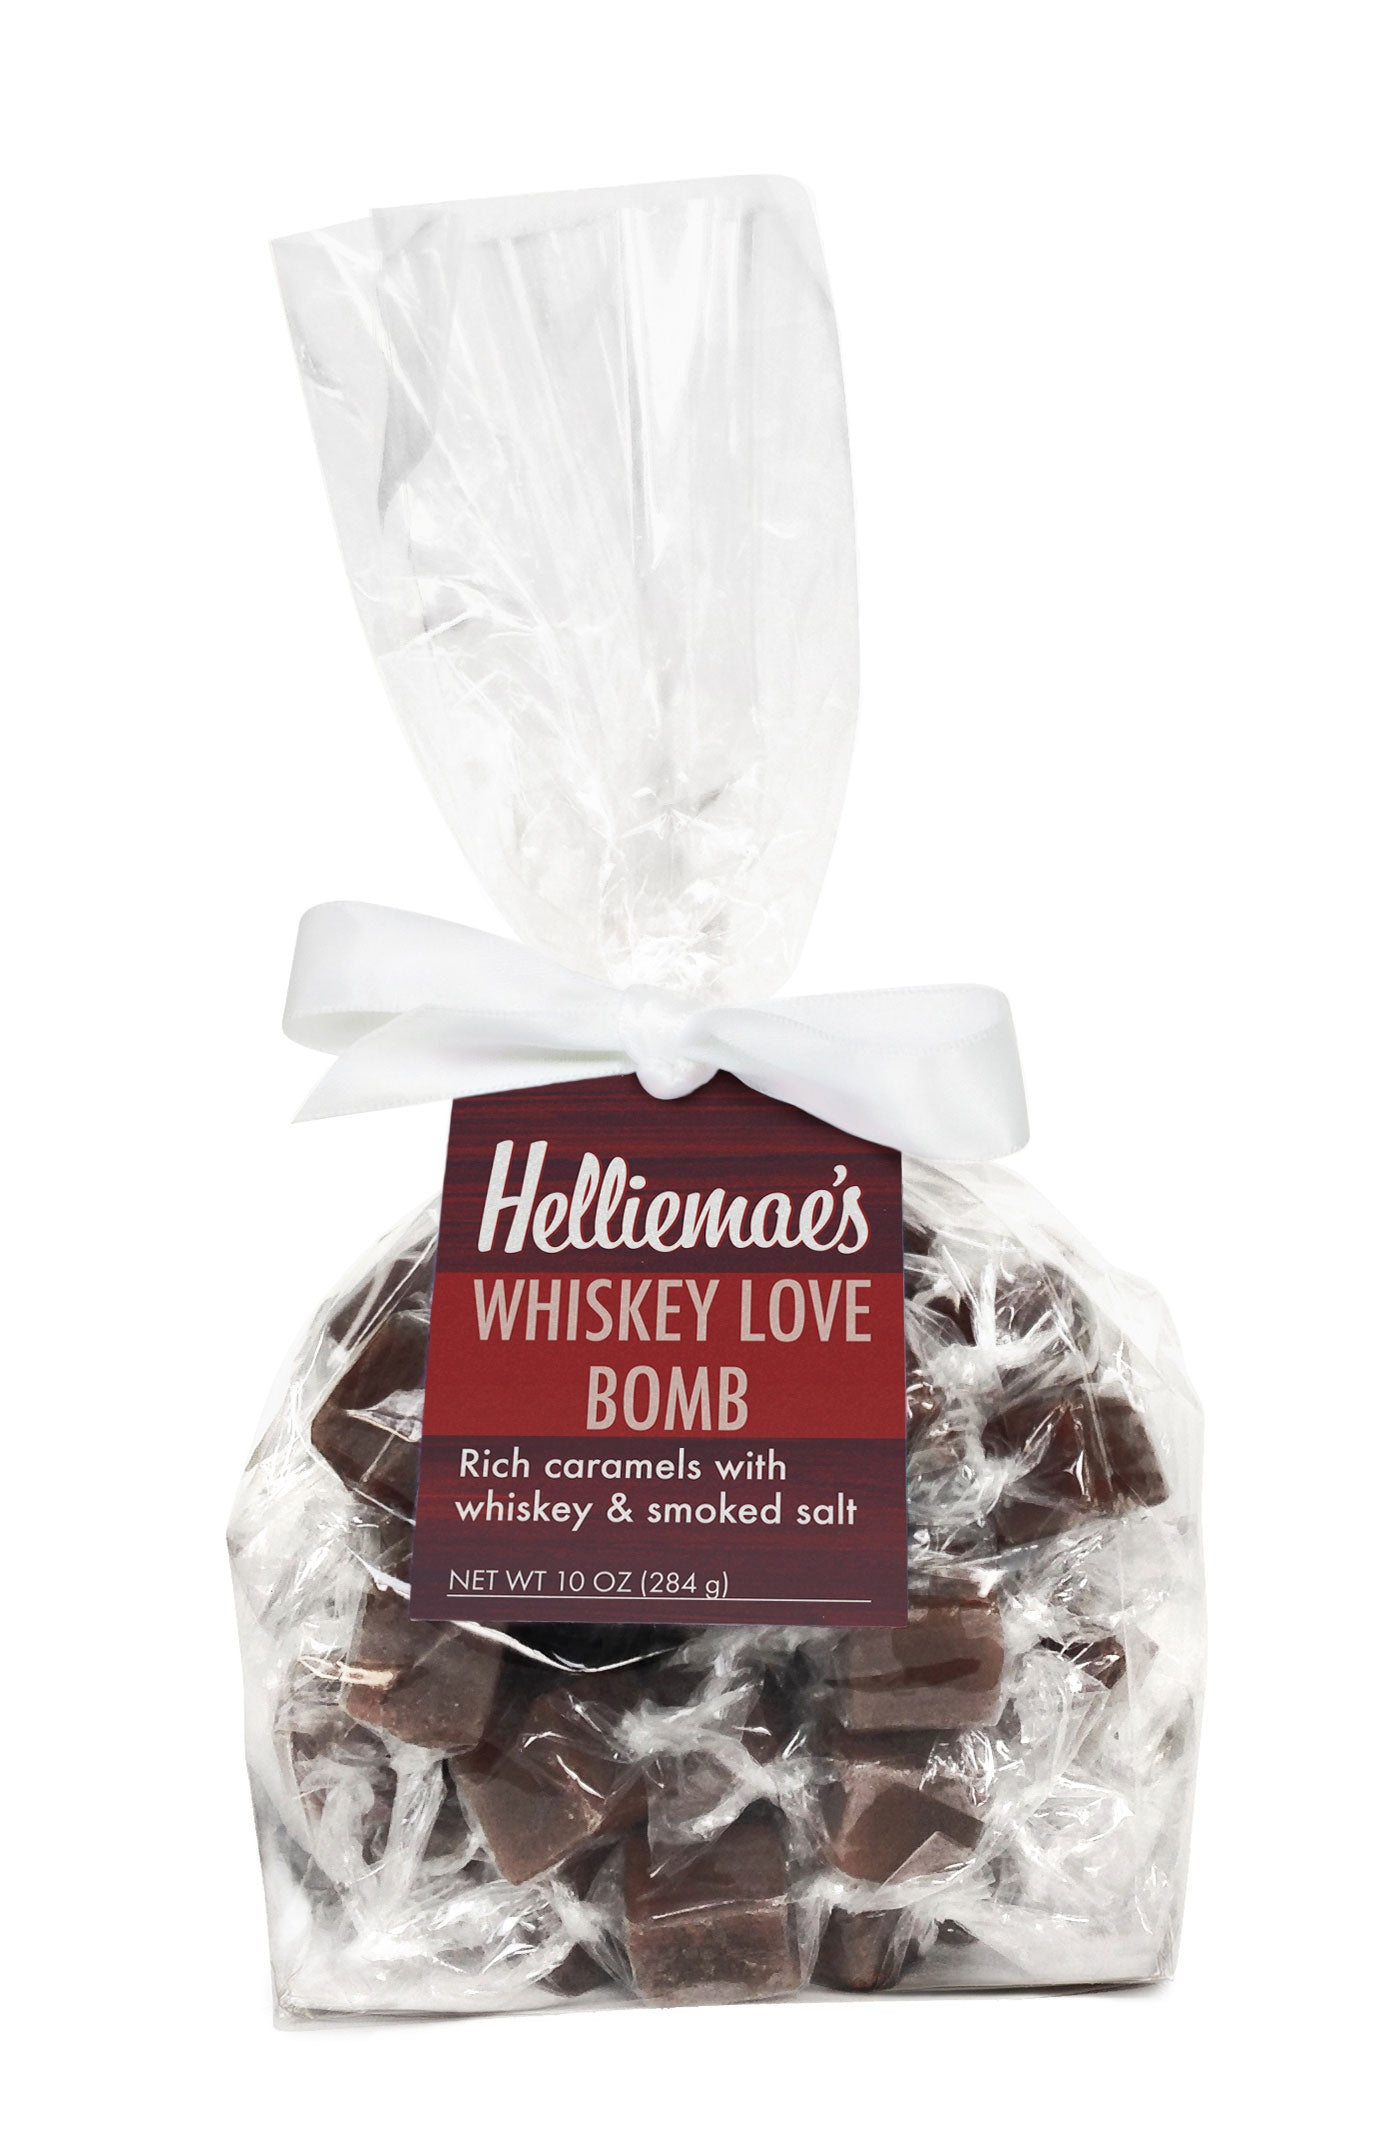 Helliemae's Whiskey Love Bomb Caramels large gift bag, clear cello bag with gathered top, fastened with white satin ribbon and colorful maroon hangtag, with effect of milk paint on a barn wall.